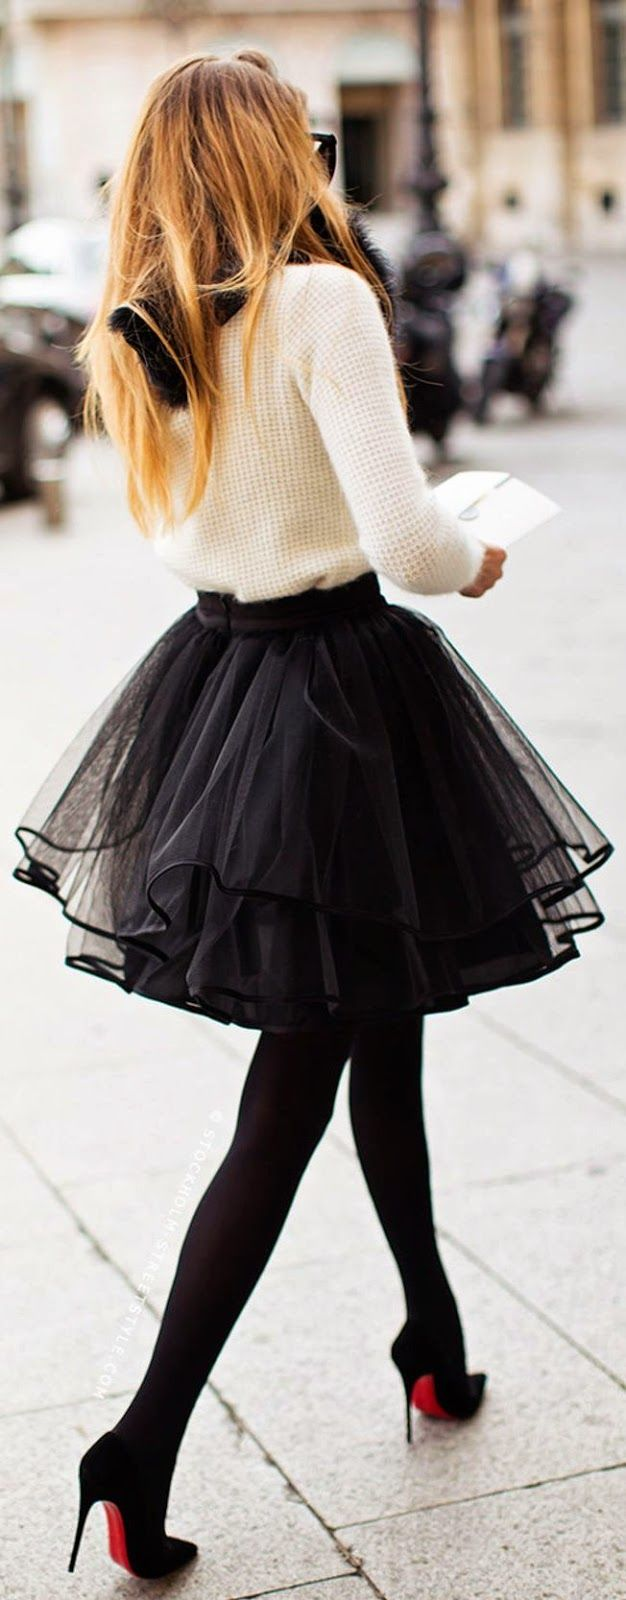 Tulle skirt with Louboutin red soles